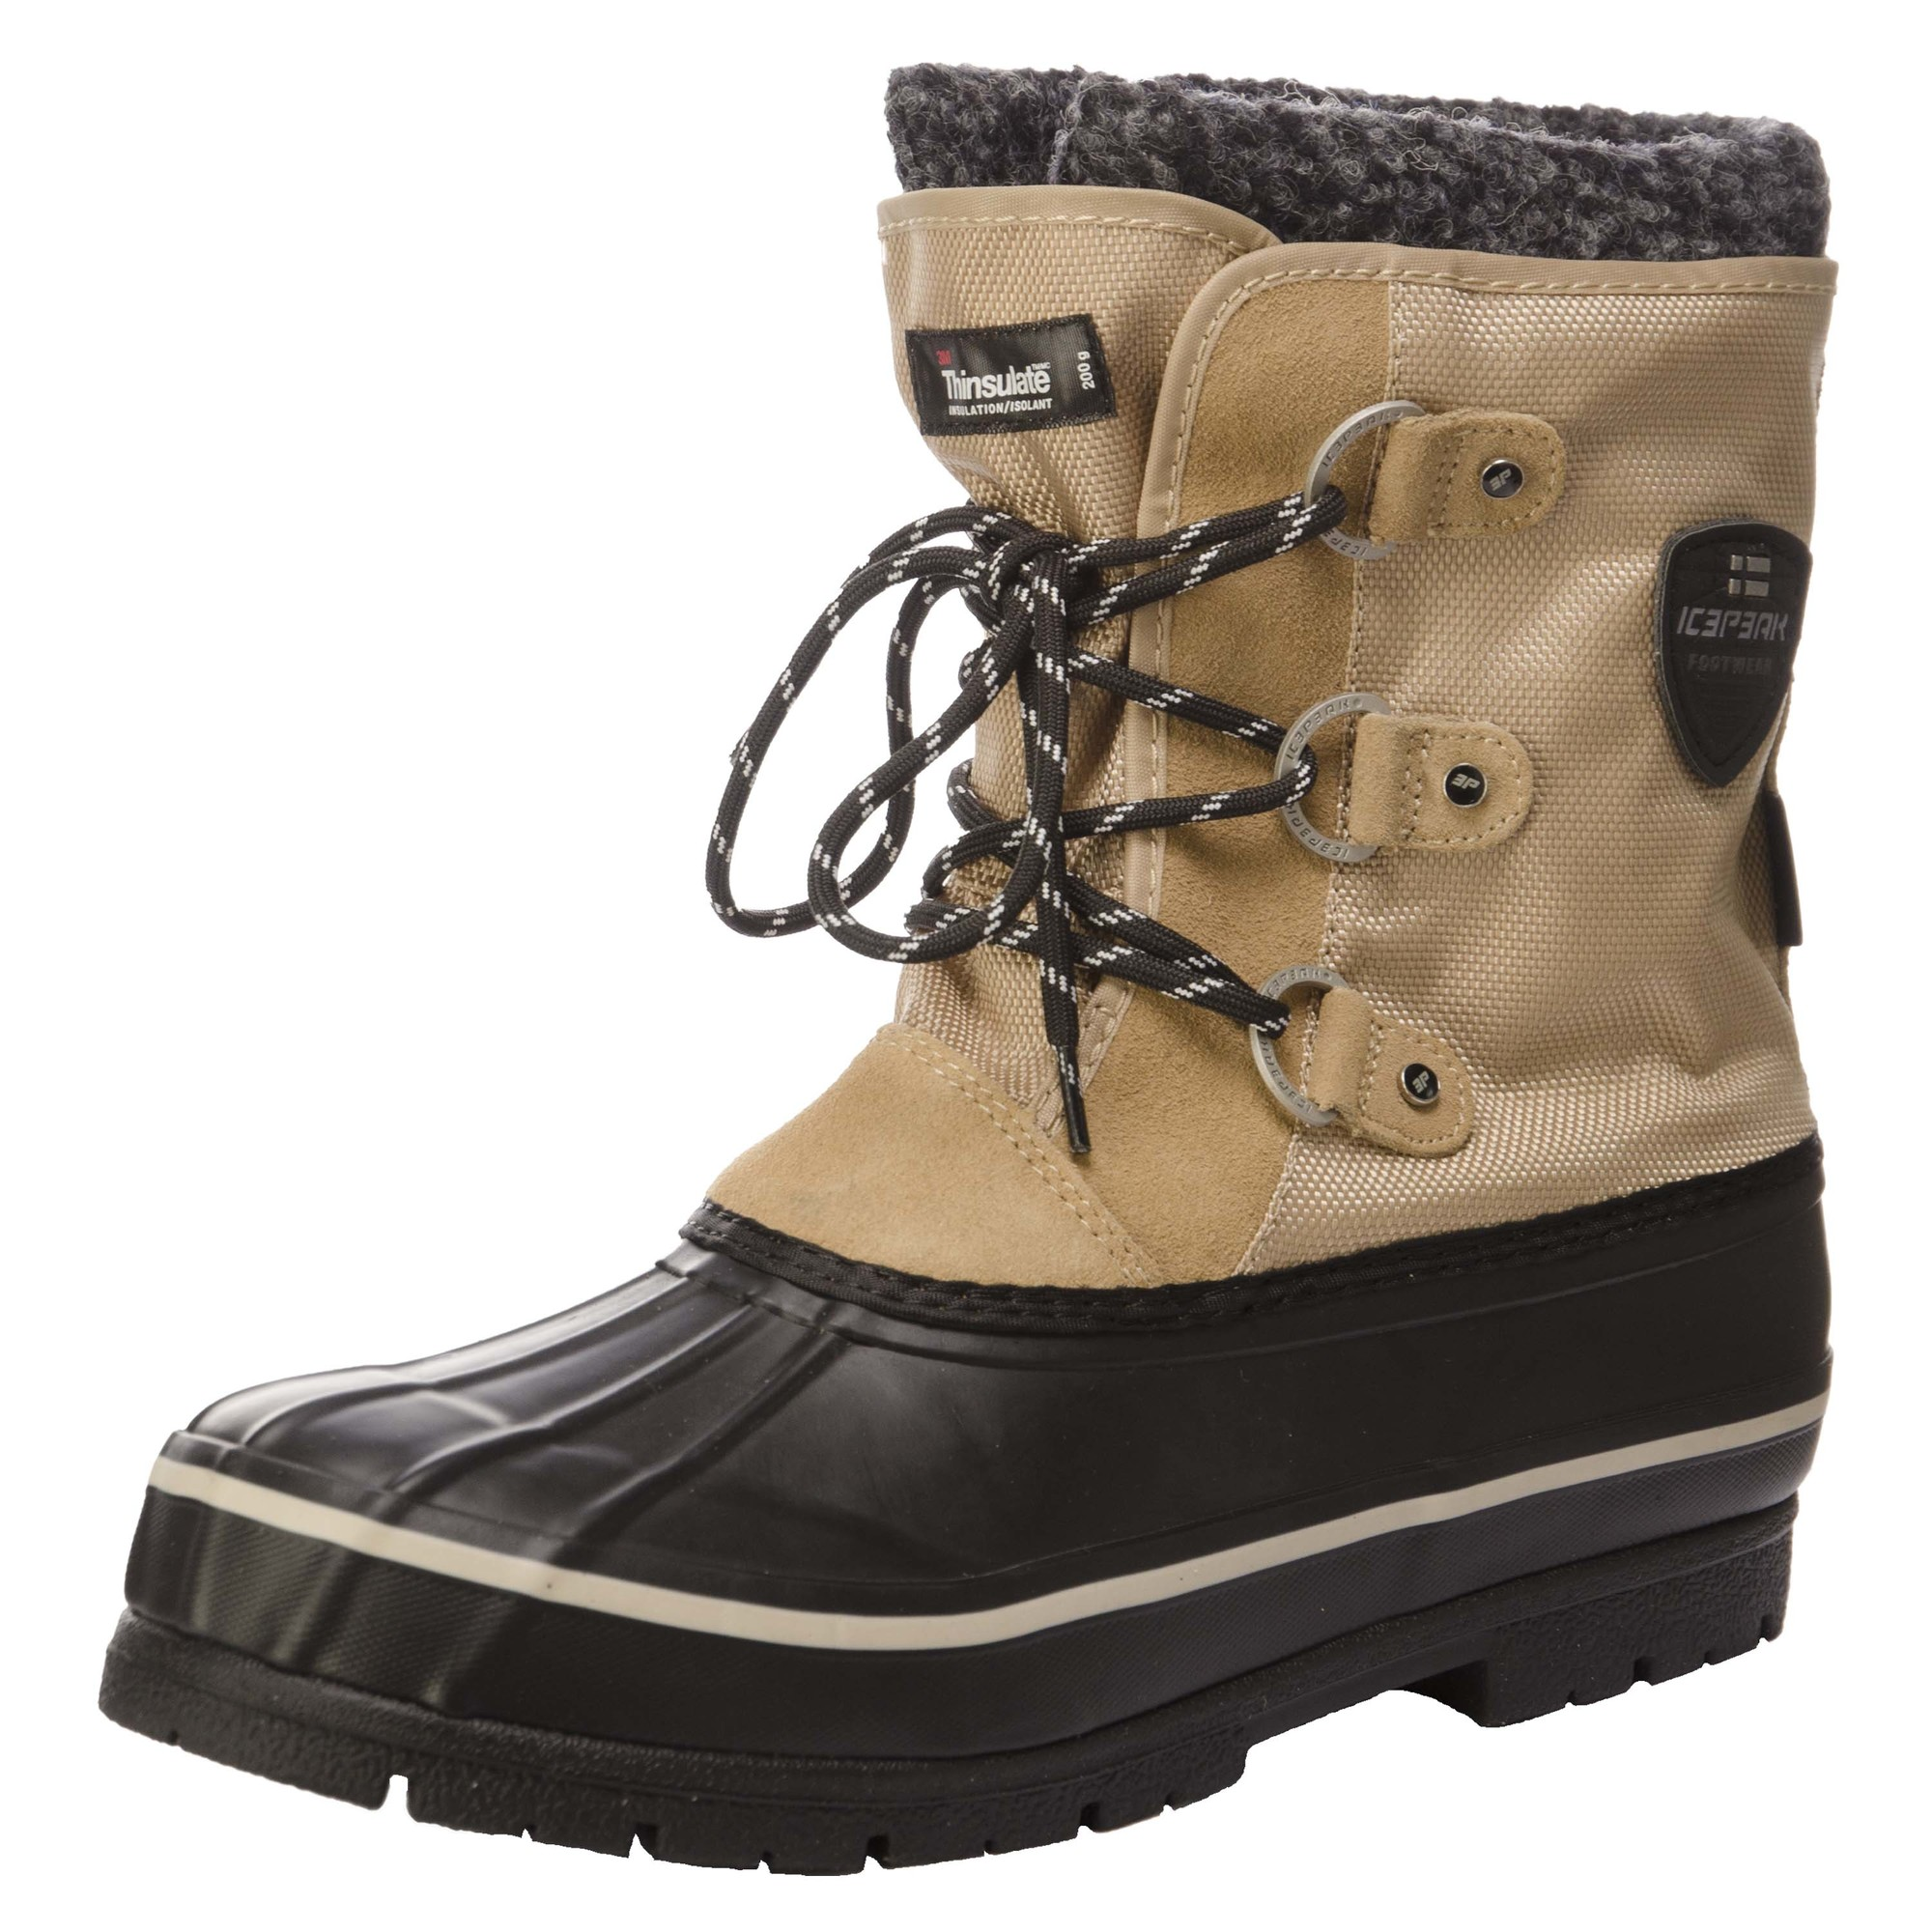 Snow boots & snow shoes online | Easy and fast on SkiWebShop.com